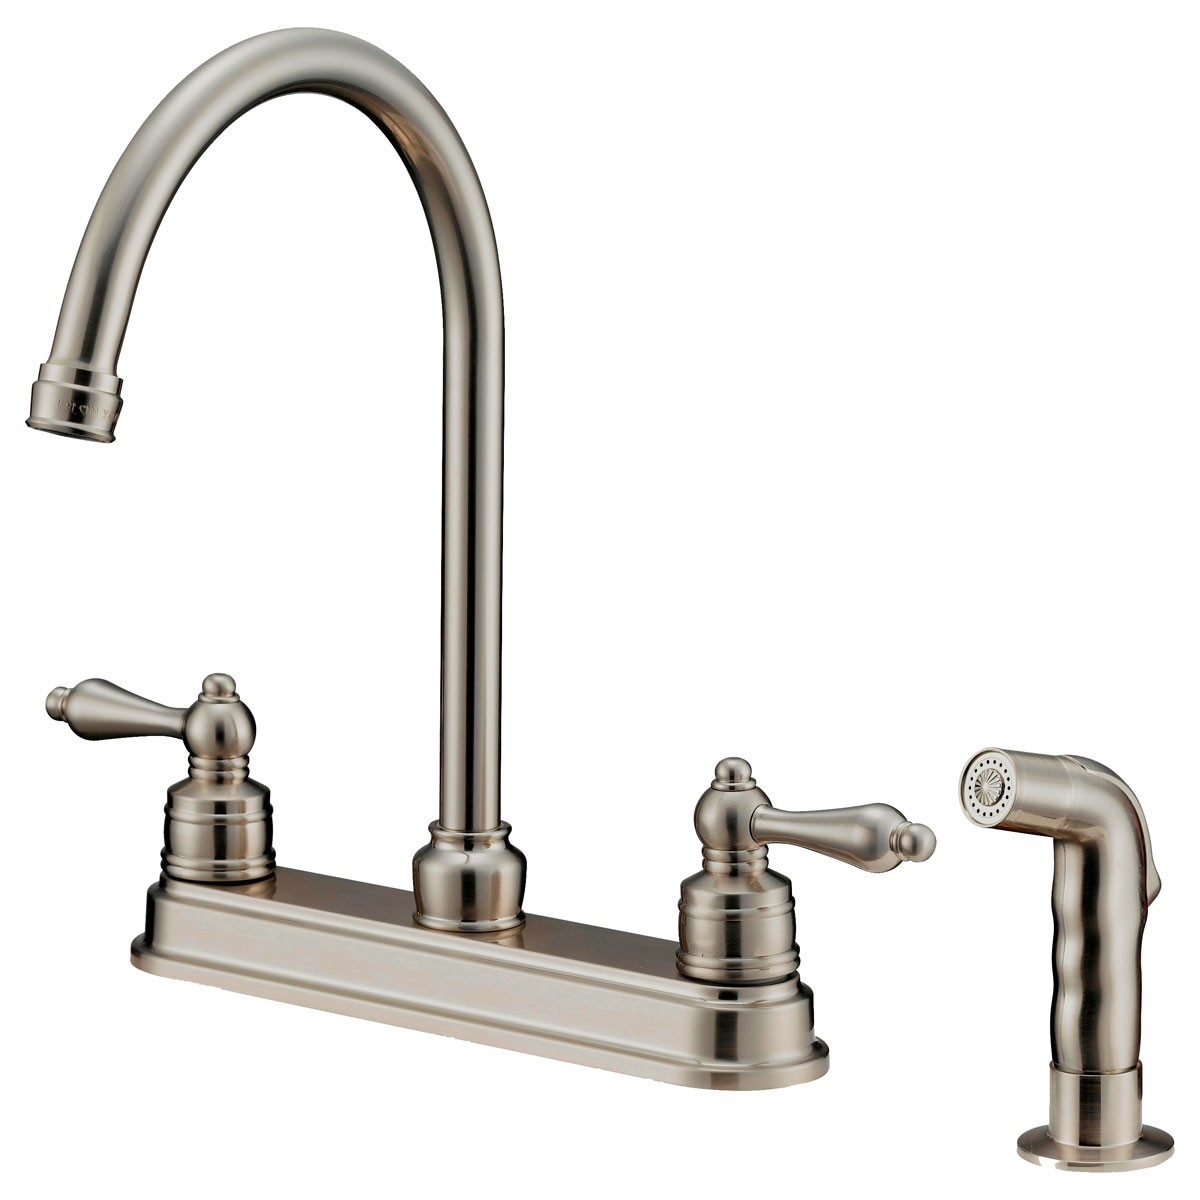 kitchen faucets brushed nickel kitchen faucet Kitchen Faucets